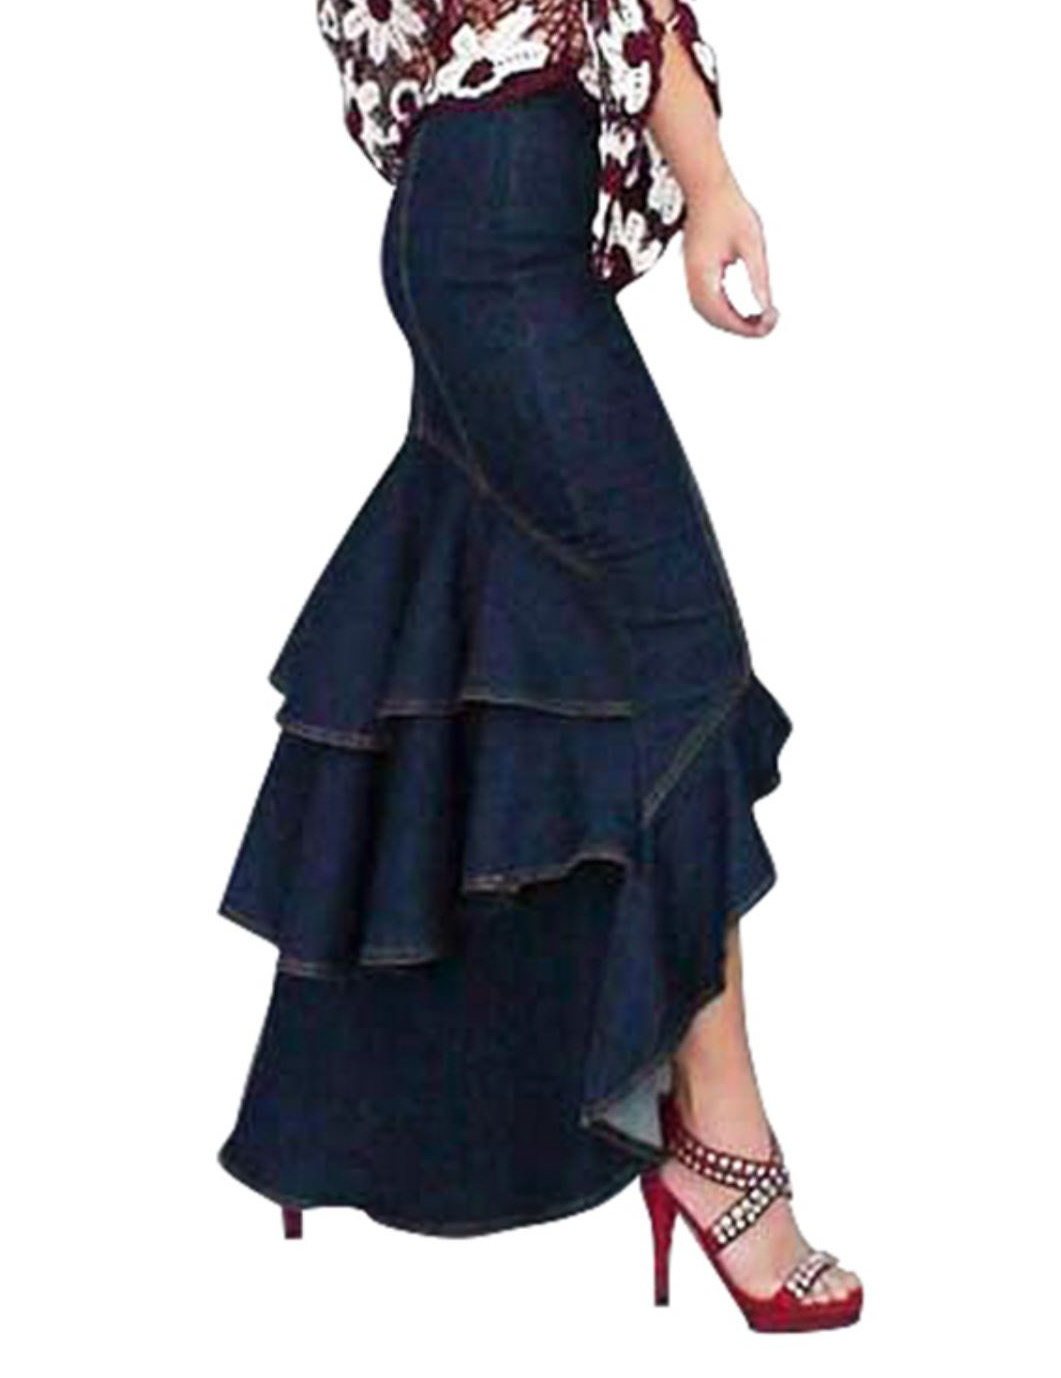 RSSLyn Size 6-8 Long SkirtvSkirts Fashion Denim Skirts for Women with Free Denim Sizes S-2XL Ruffled Skirts with a Dove Tail Ruffled-Denim Mermaid Skirts